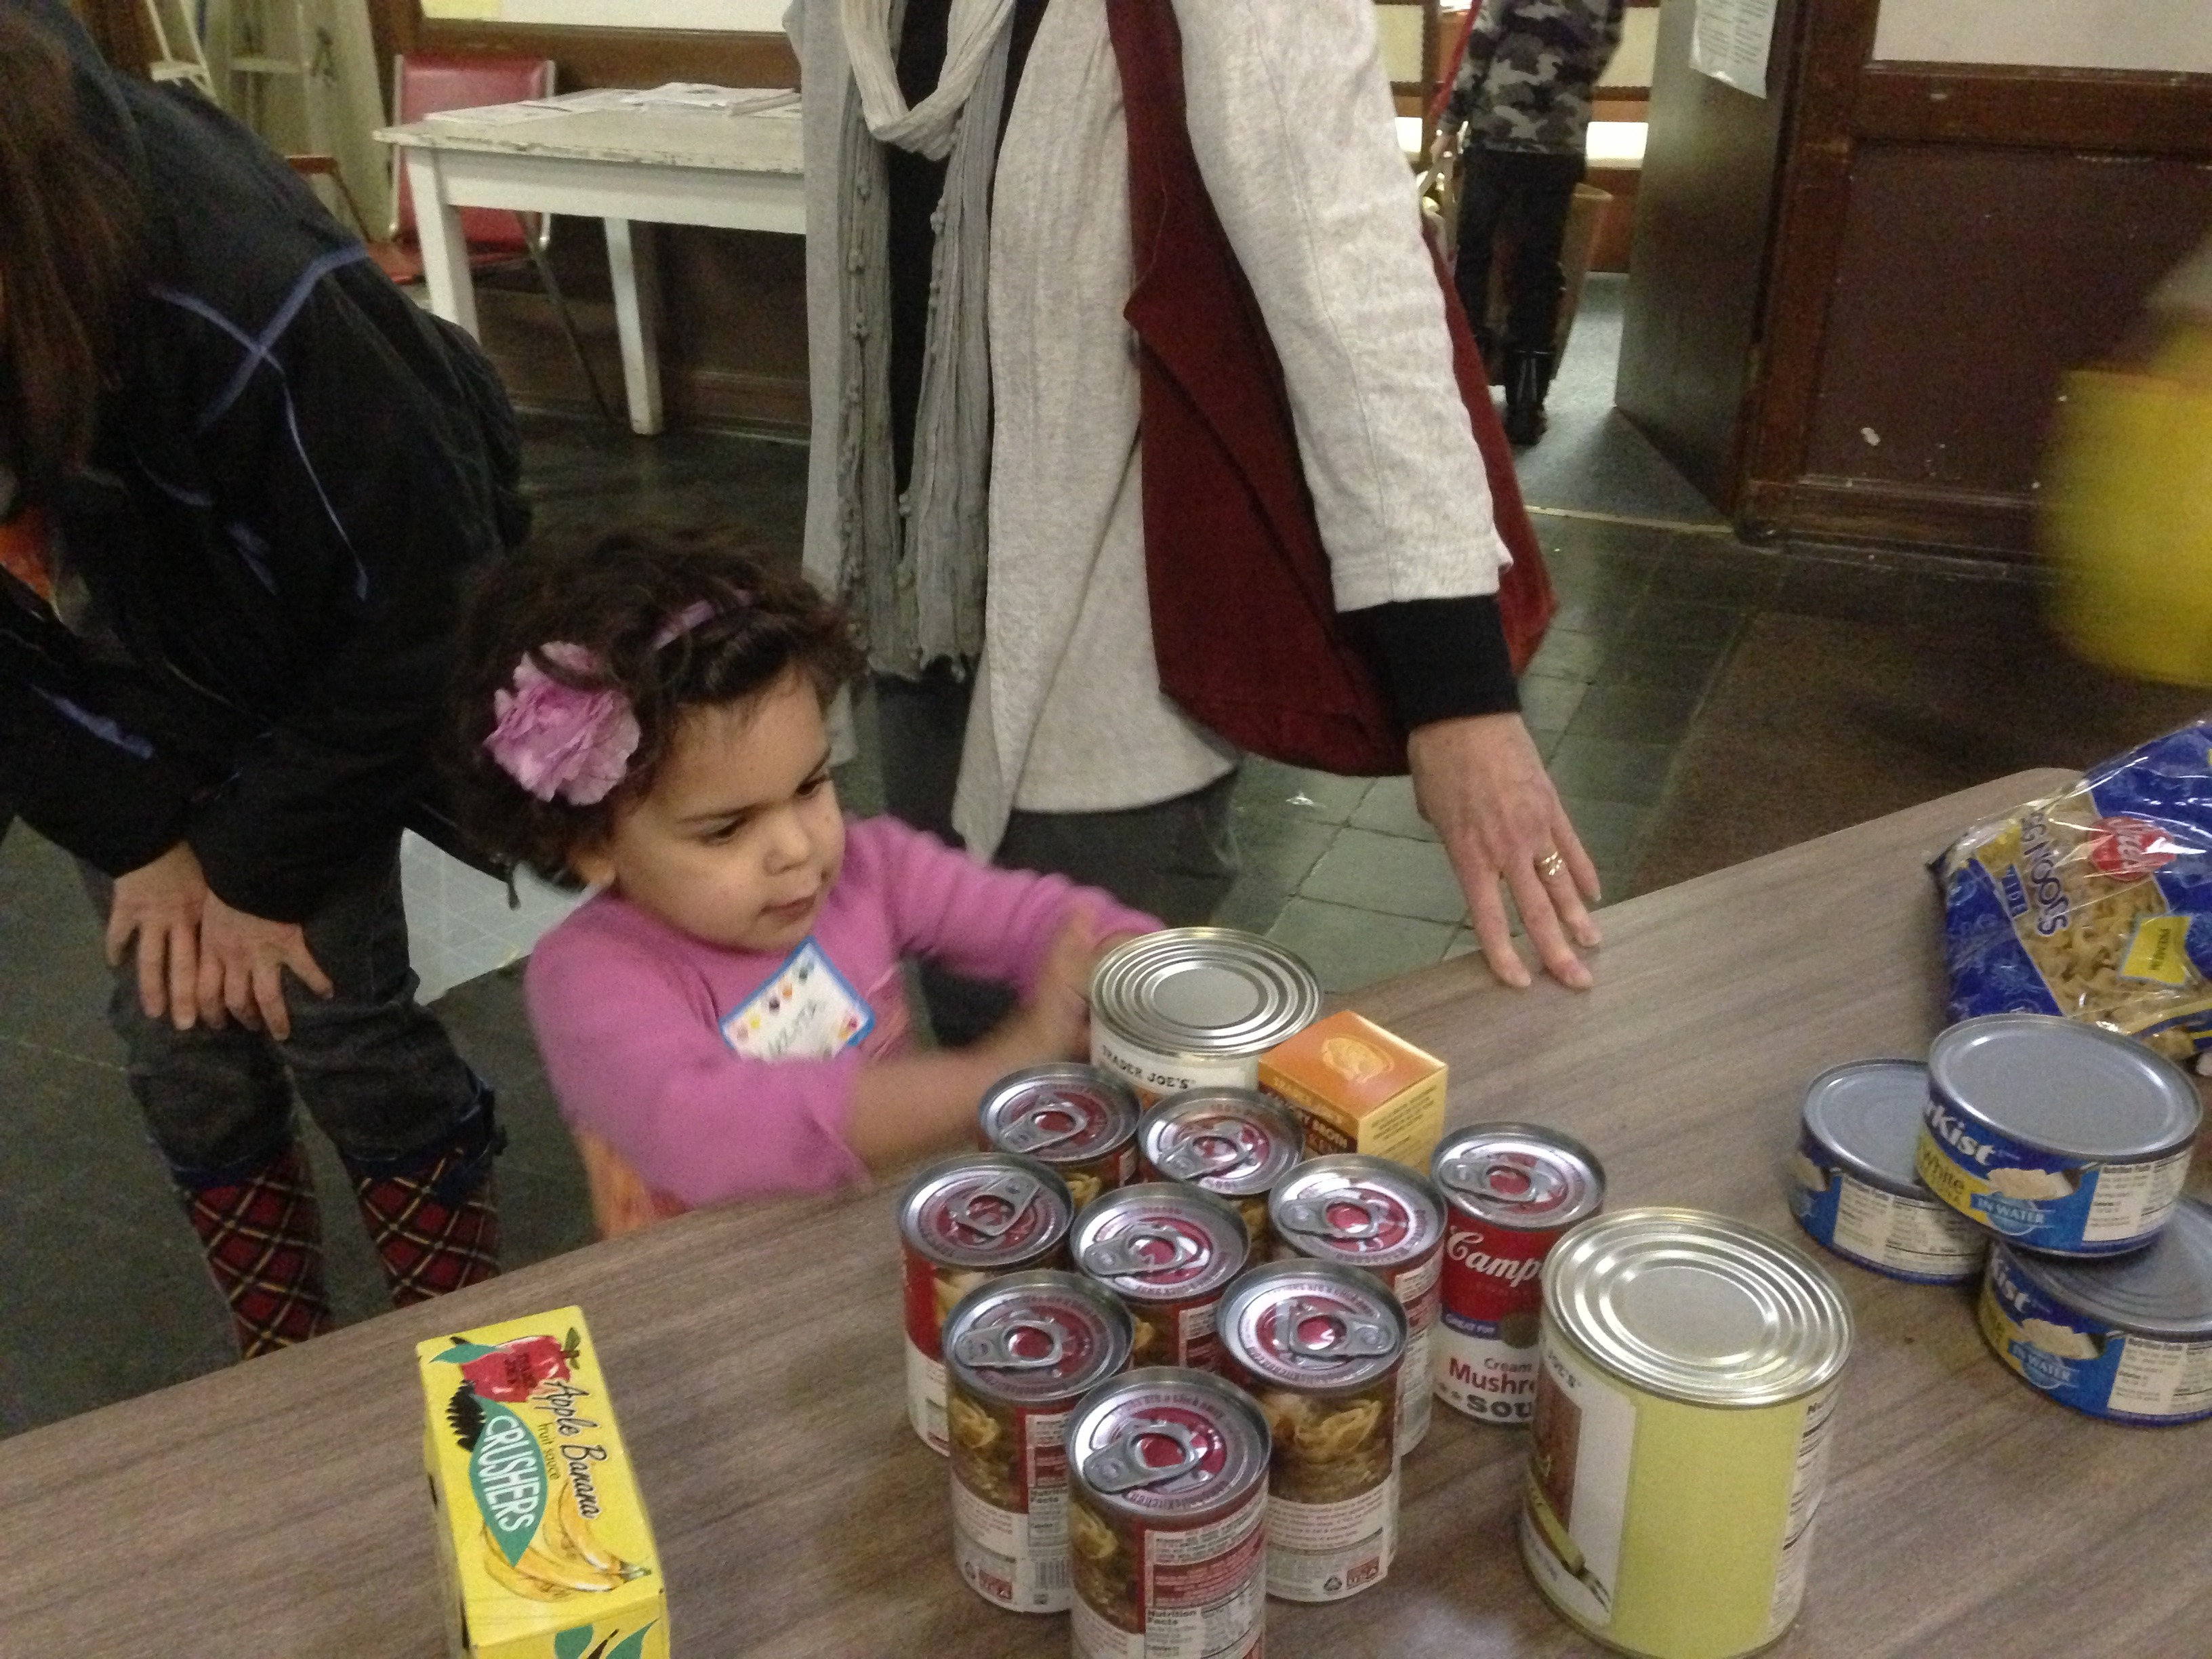 1aca5fbeaec0f9d7e9a9_Preschool_Girl_with_Cans_at_Food_Pantry_1-25-13.JPG